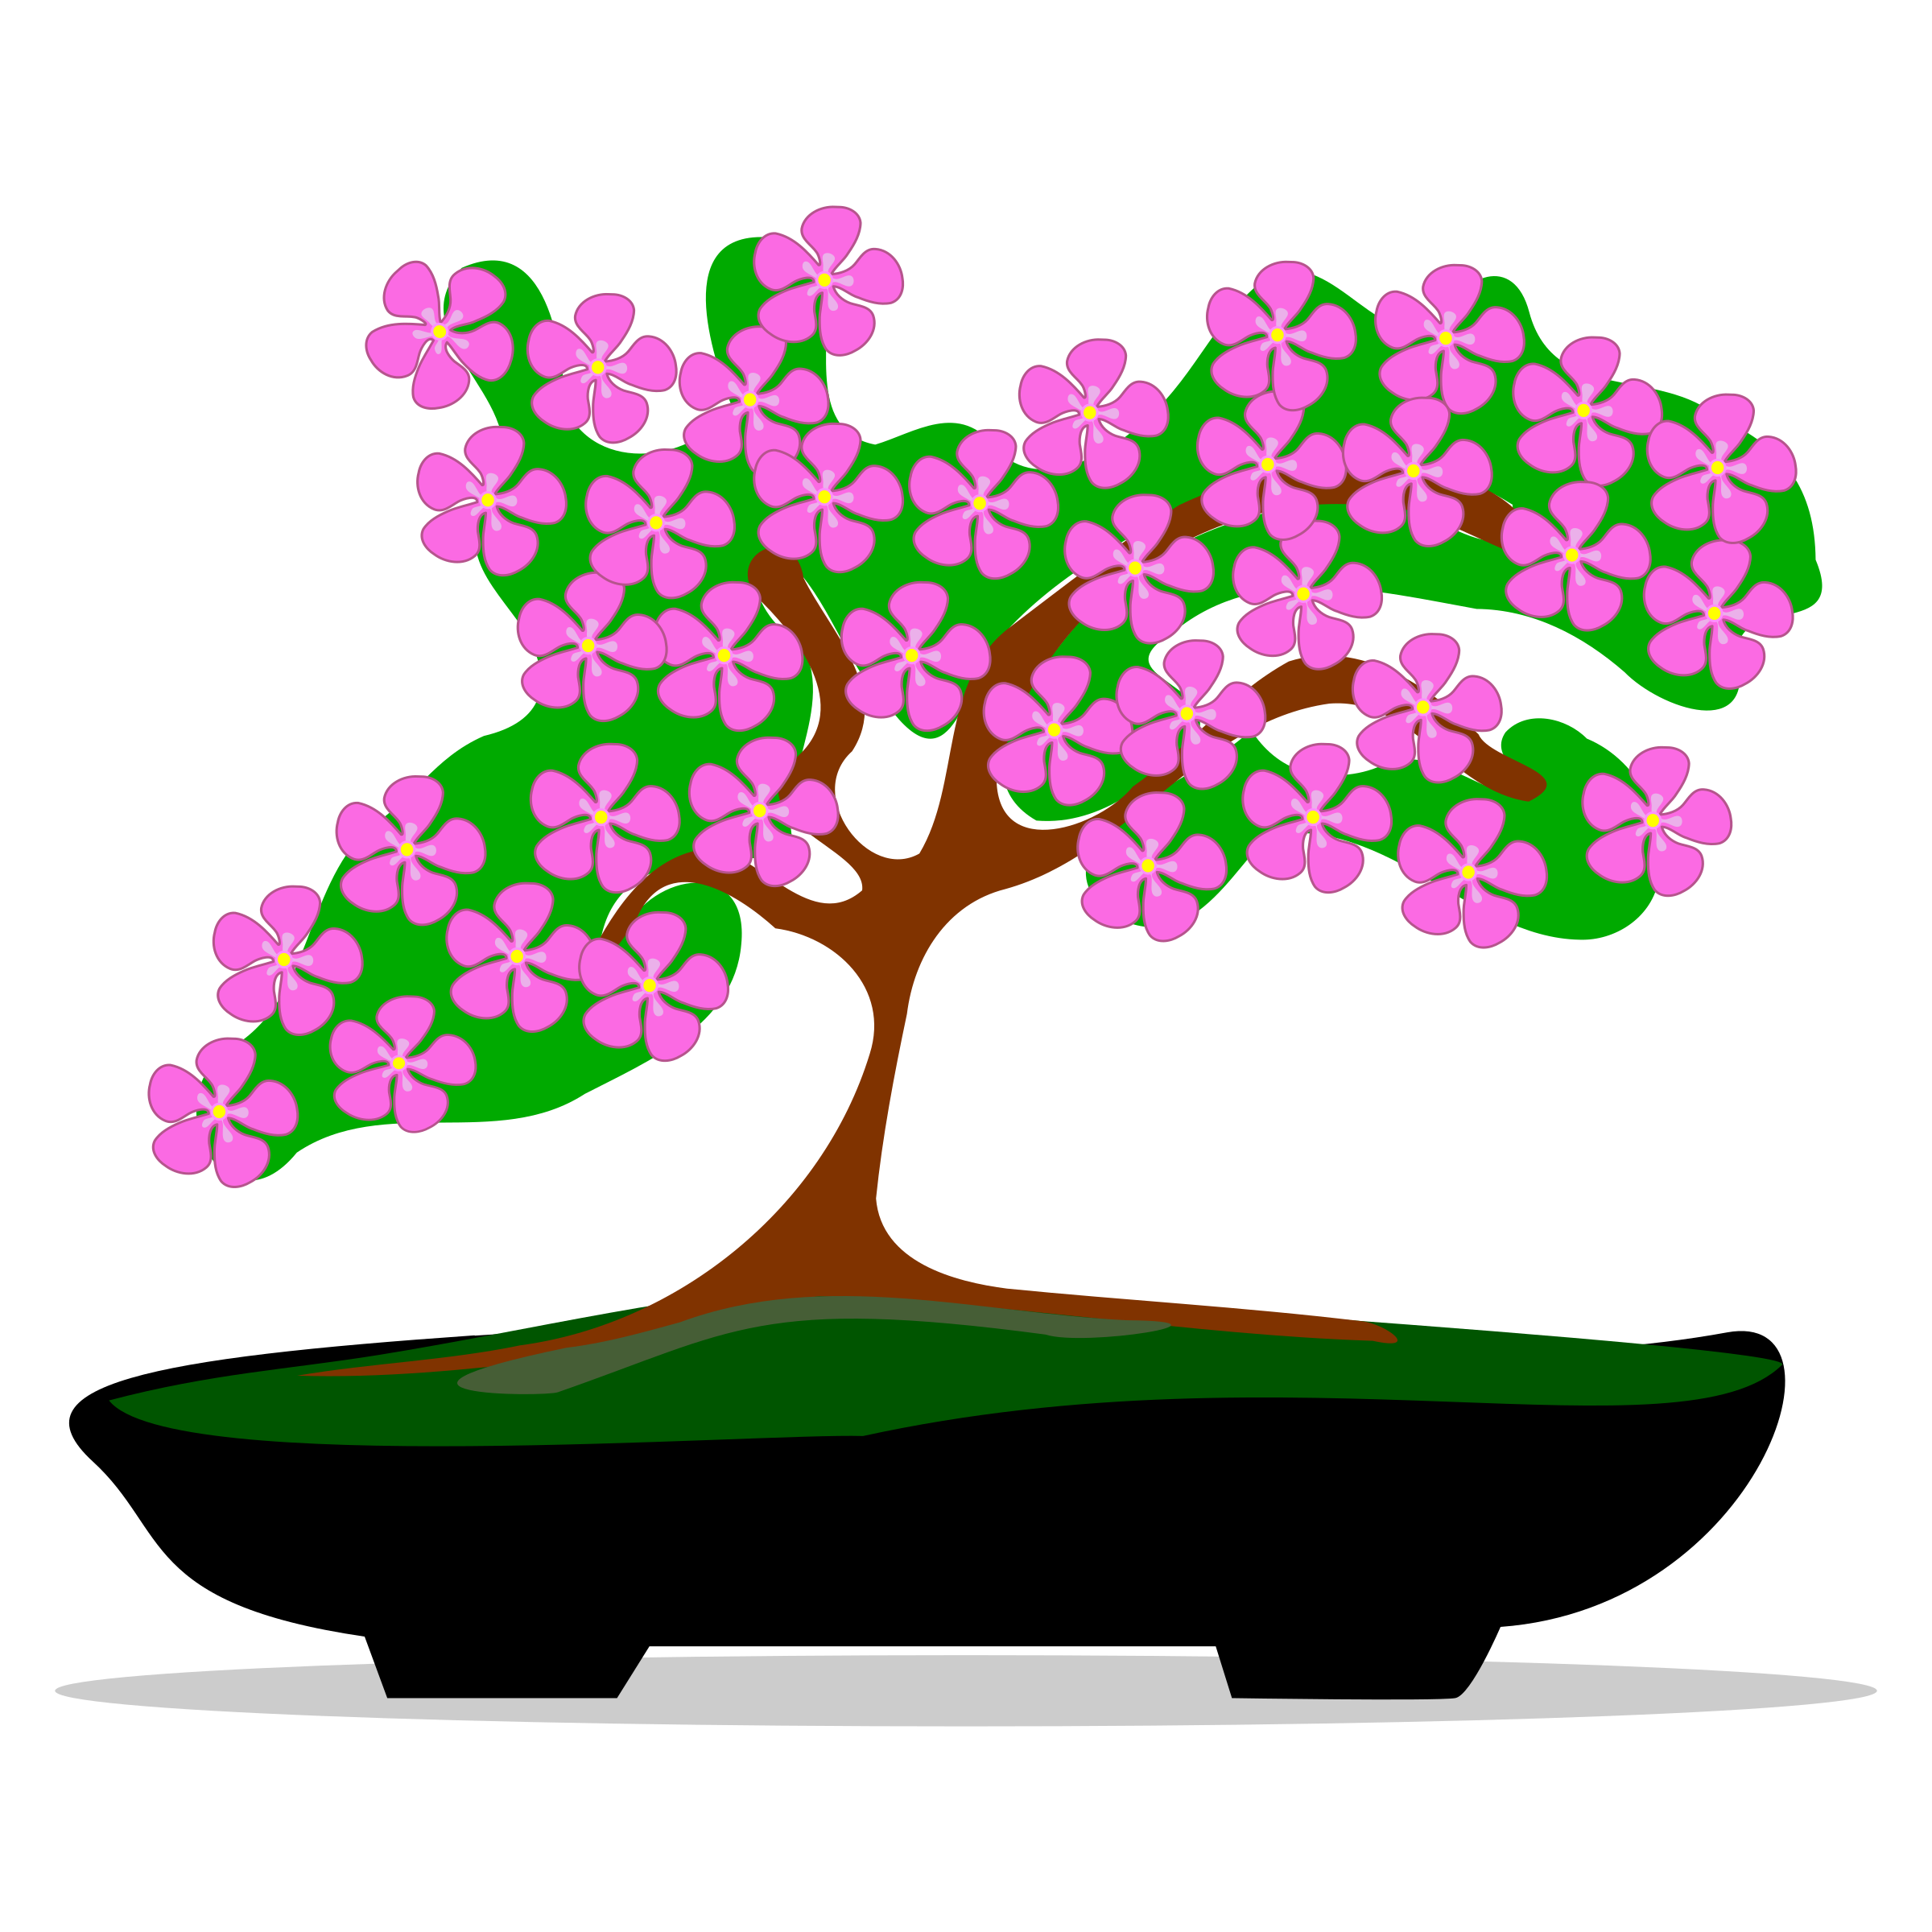 Bonsai clipart #5, Download drawings